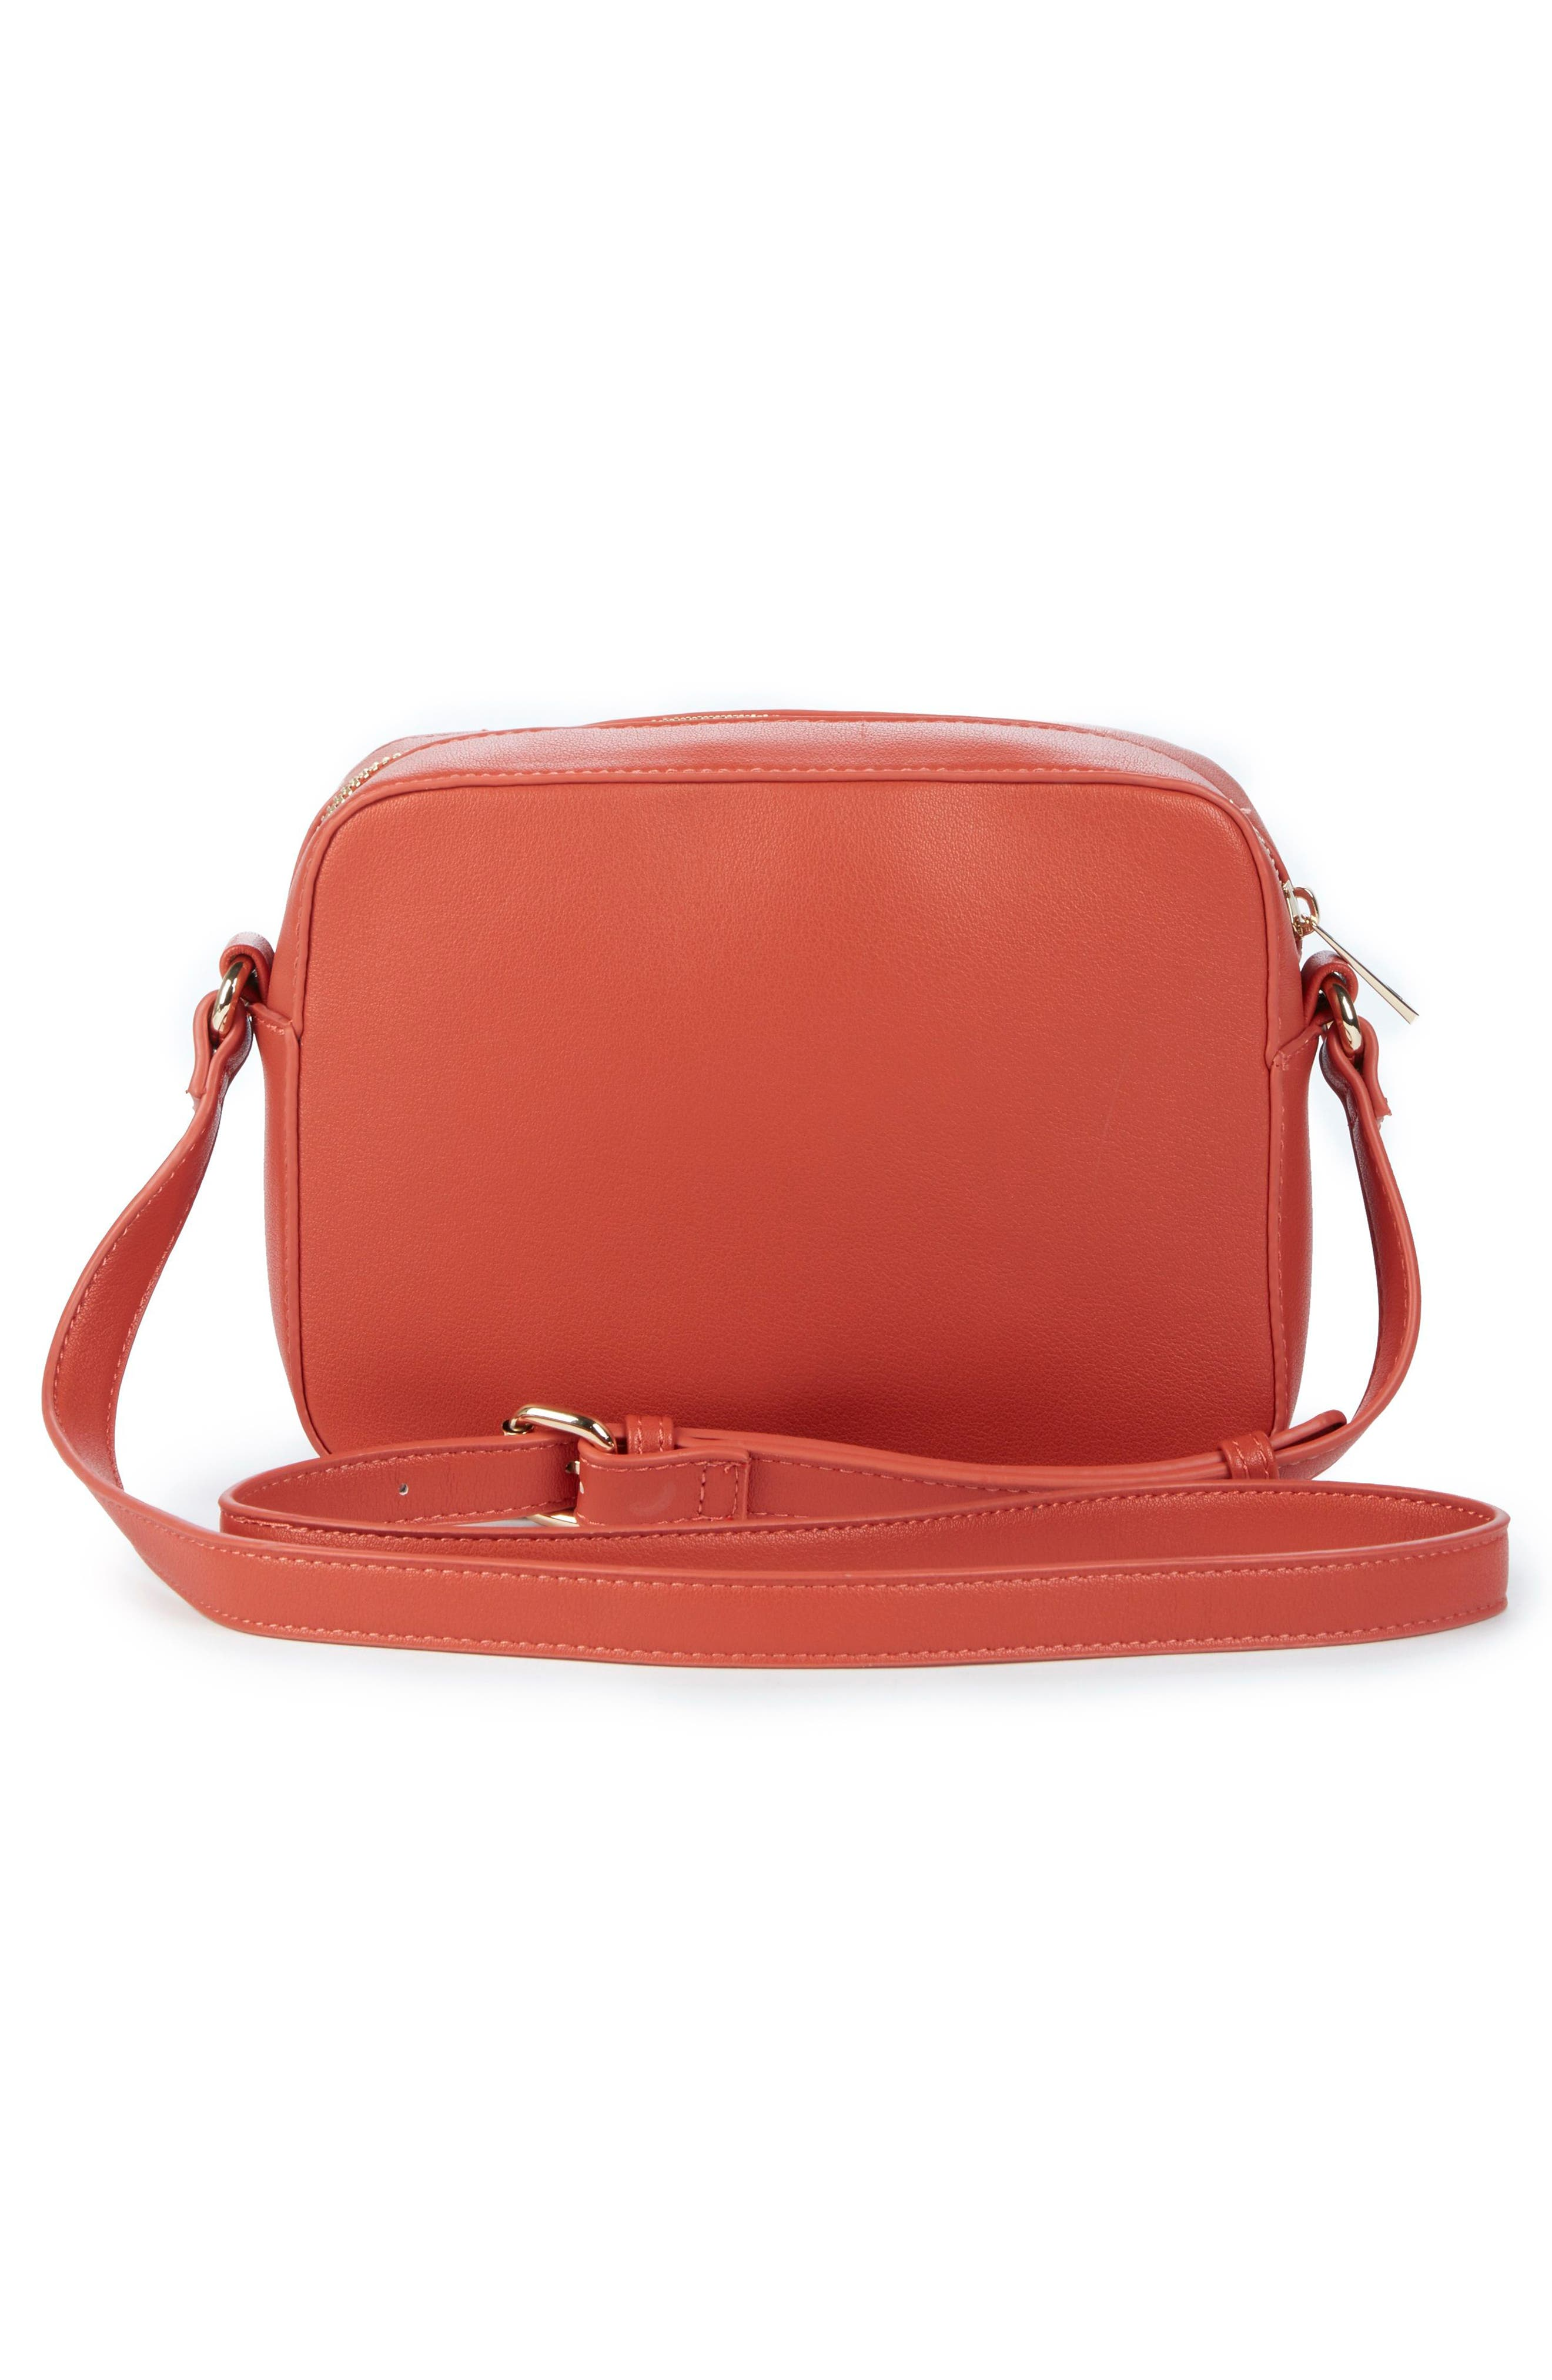 Hand Woven Faux Leather Crossbody Bag,                             Alternate thumbnail 2, color,                             Coral